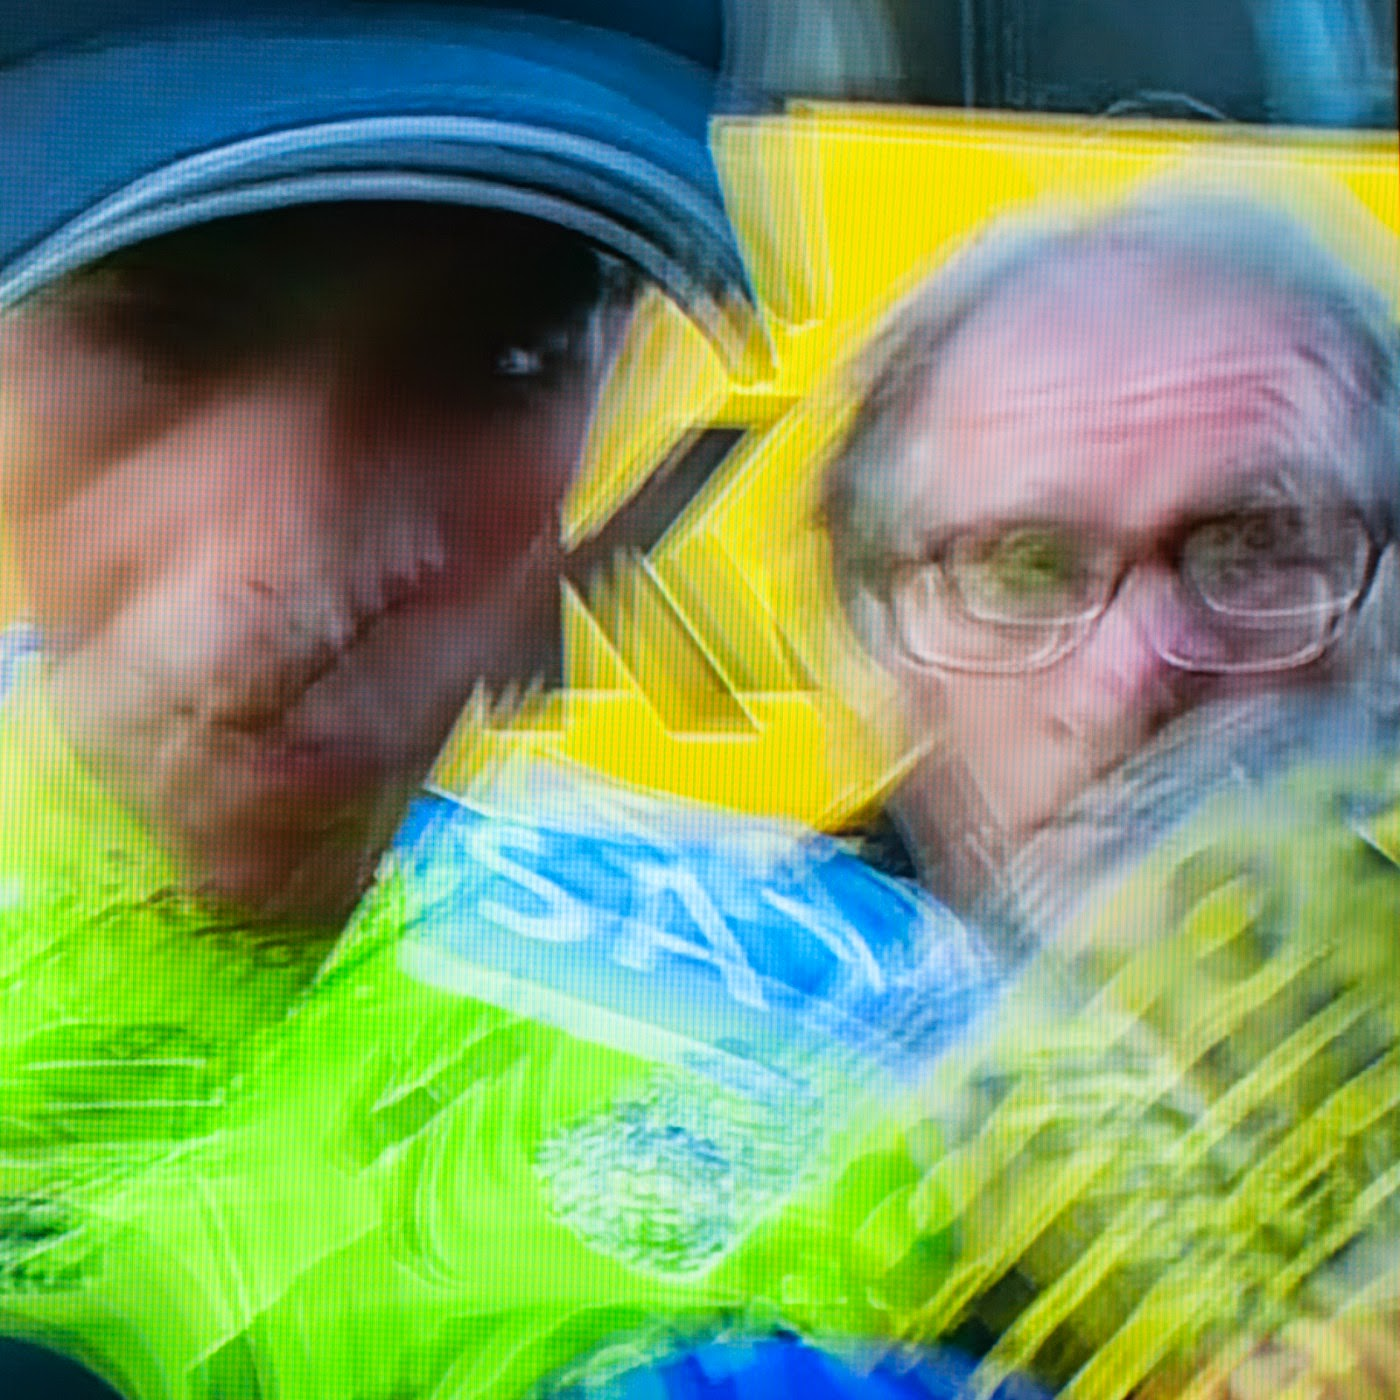 le tour de france, motion blur, blur, abstract, abstraction, tim macauley, photographic art, you won't see this at MoMA, appropriation, found imagery, le tour 2014, tv footage, portrait, timothy Macauley, the light monkey collective, grand cycling tour, Vincenzo Nibali, Team Astana